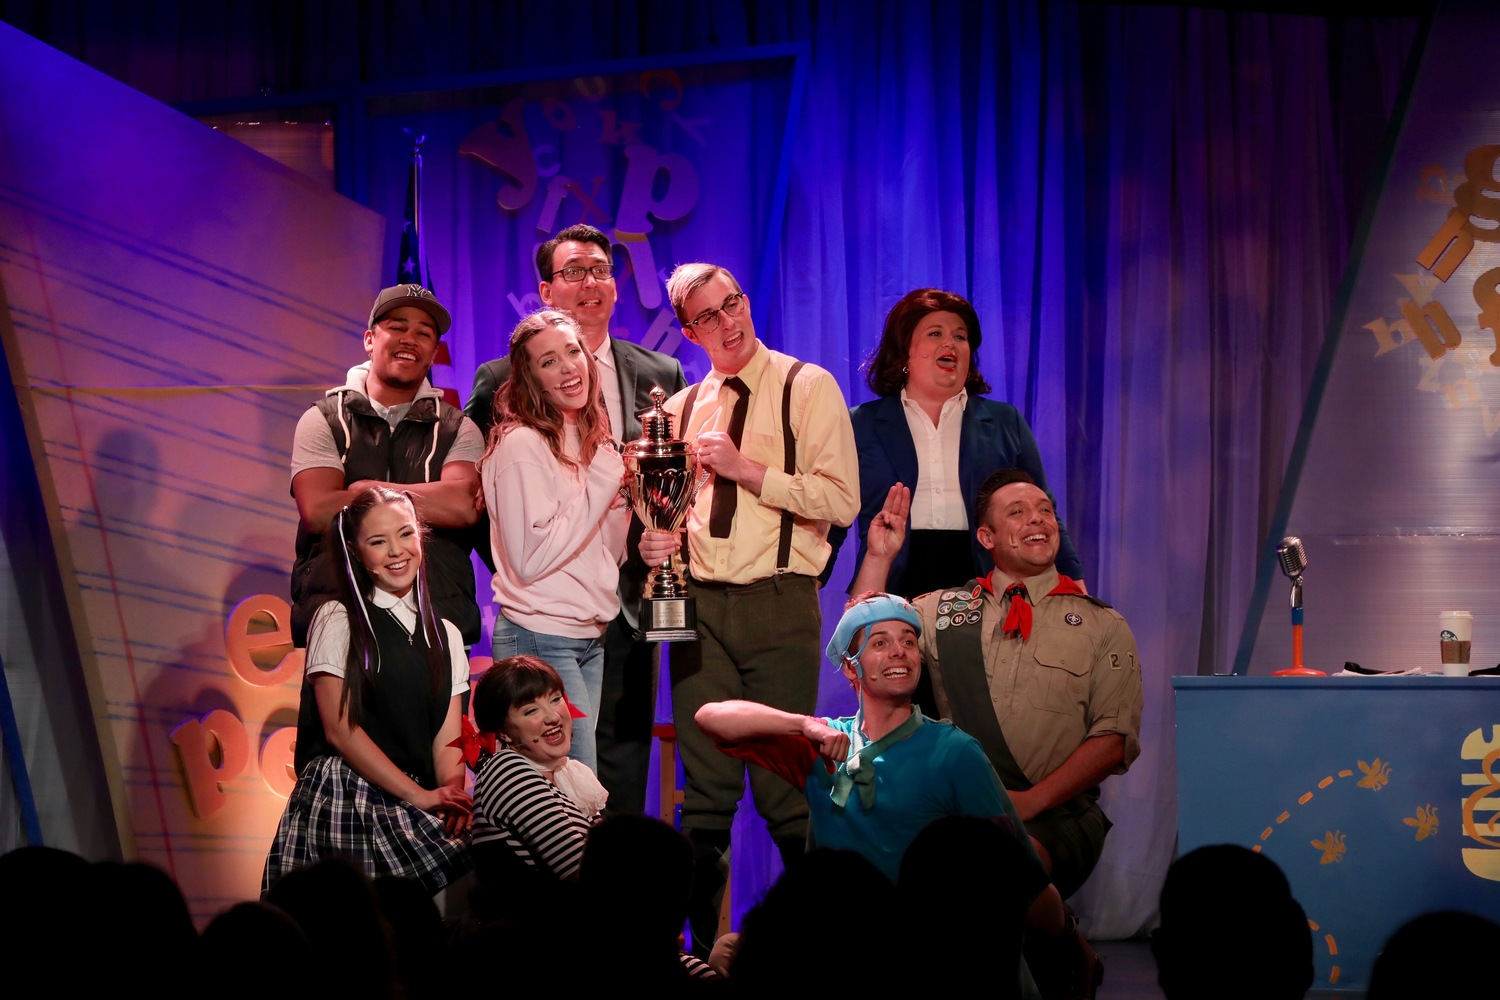 BWW Review: THE 25TH ANNUAL PUTNAM COUNTY SPELLING BEE at The Abbey is a R-I-O-T